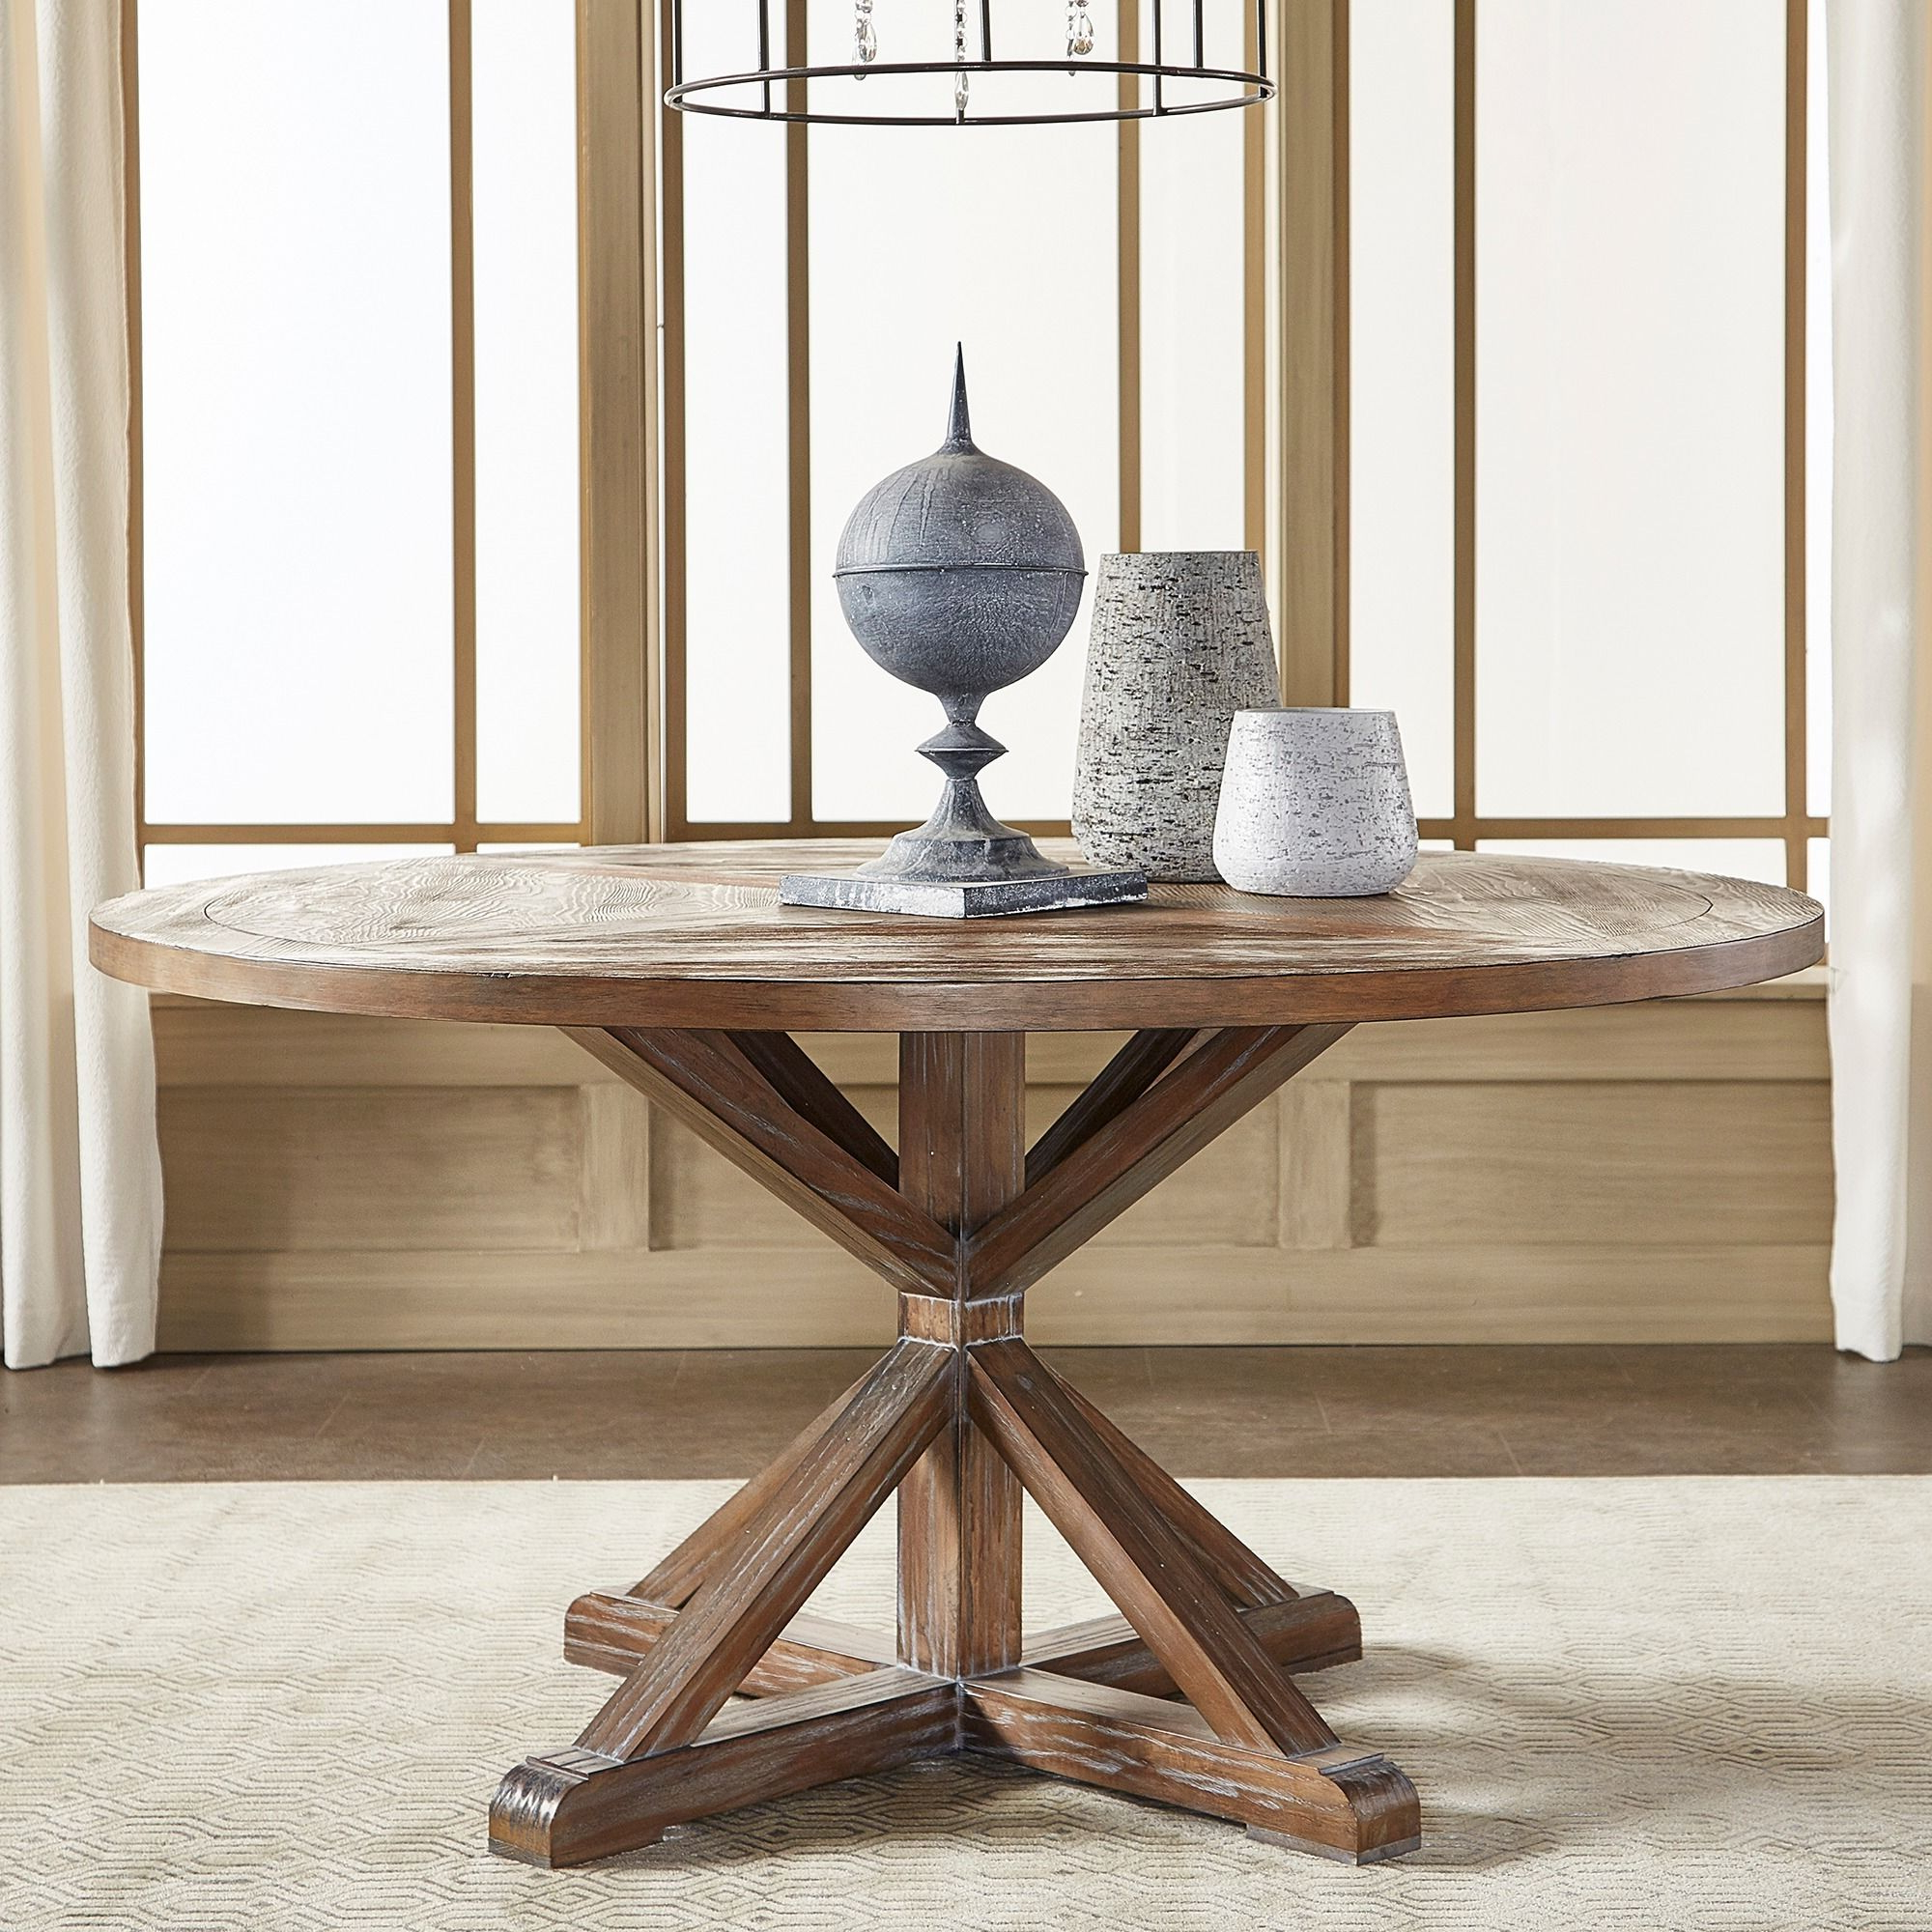 Benchwright Rustic X-Base Round Pine Wood Dining Table with regard to Well known Gray Wash Benchwright Pedestal Extending Dining Tables